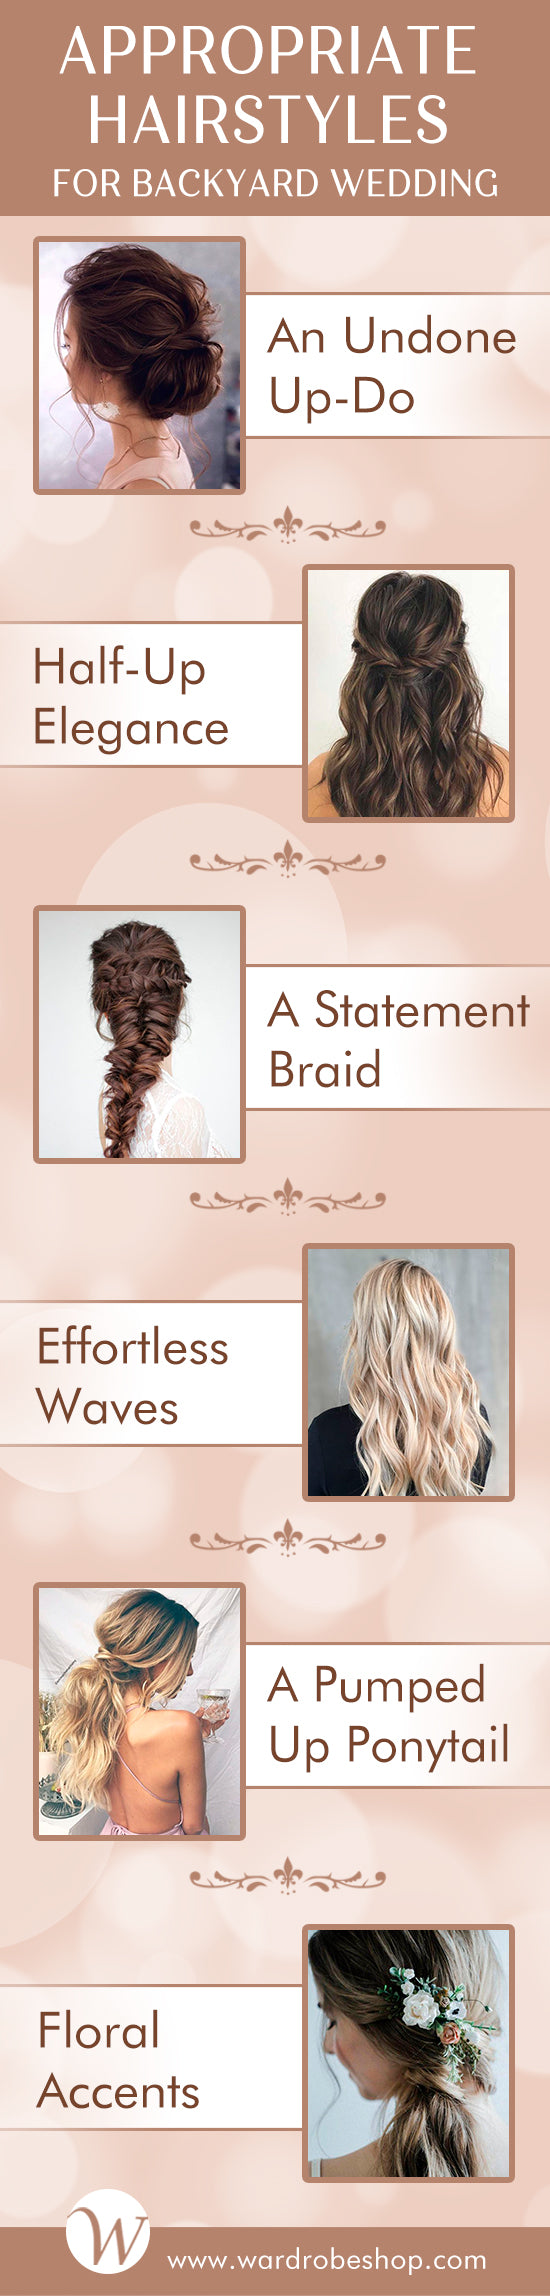 Backyard Wedding Hairstyles